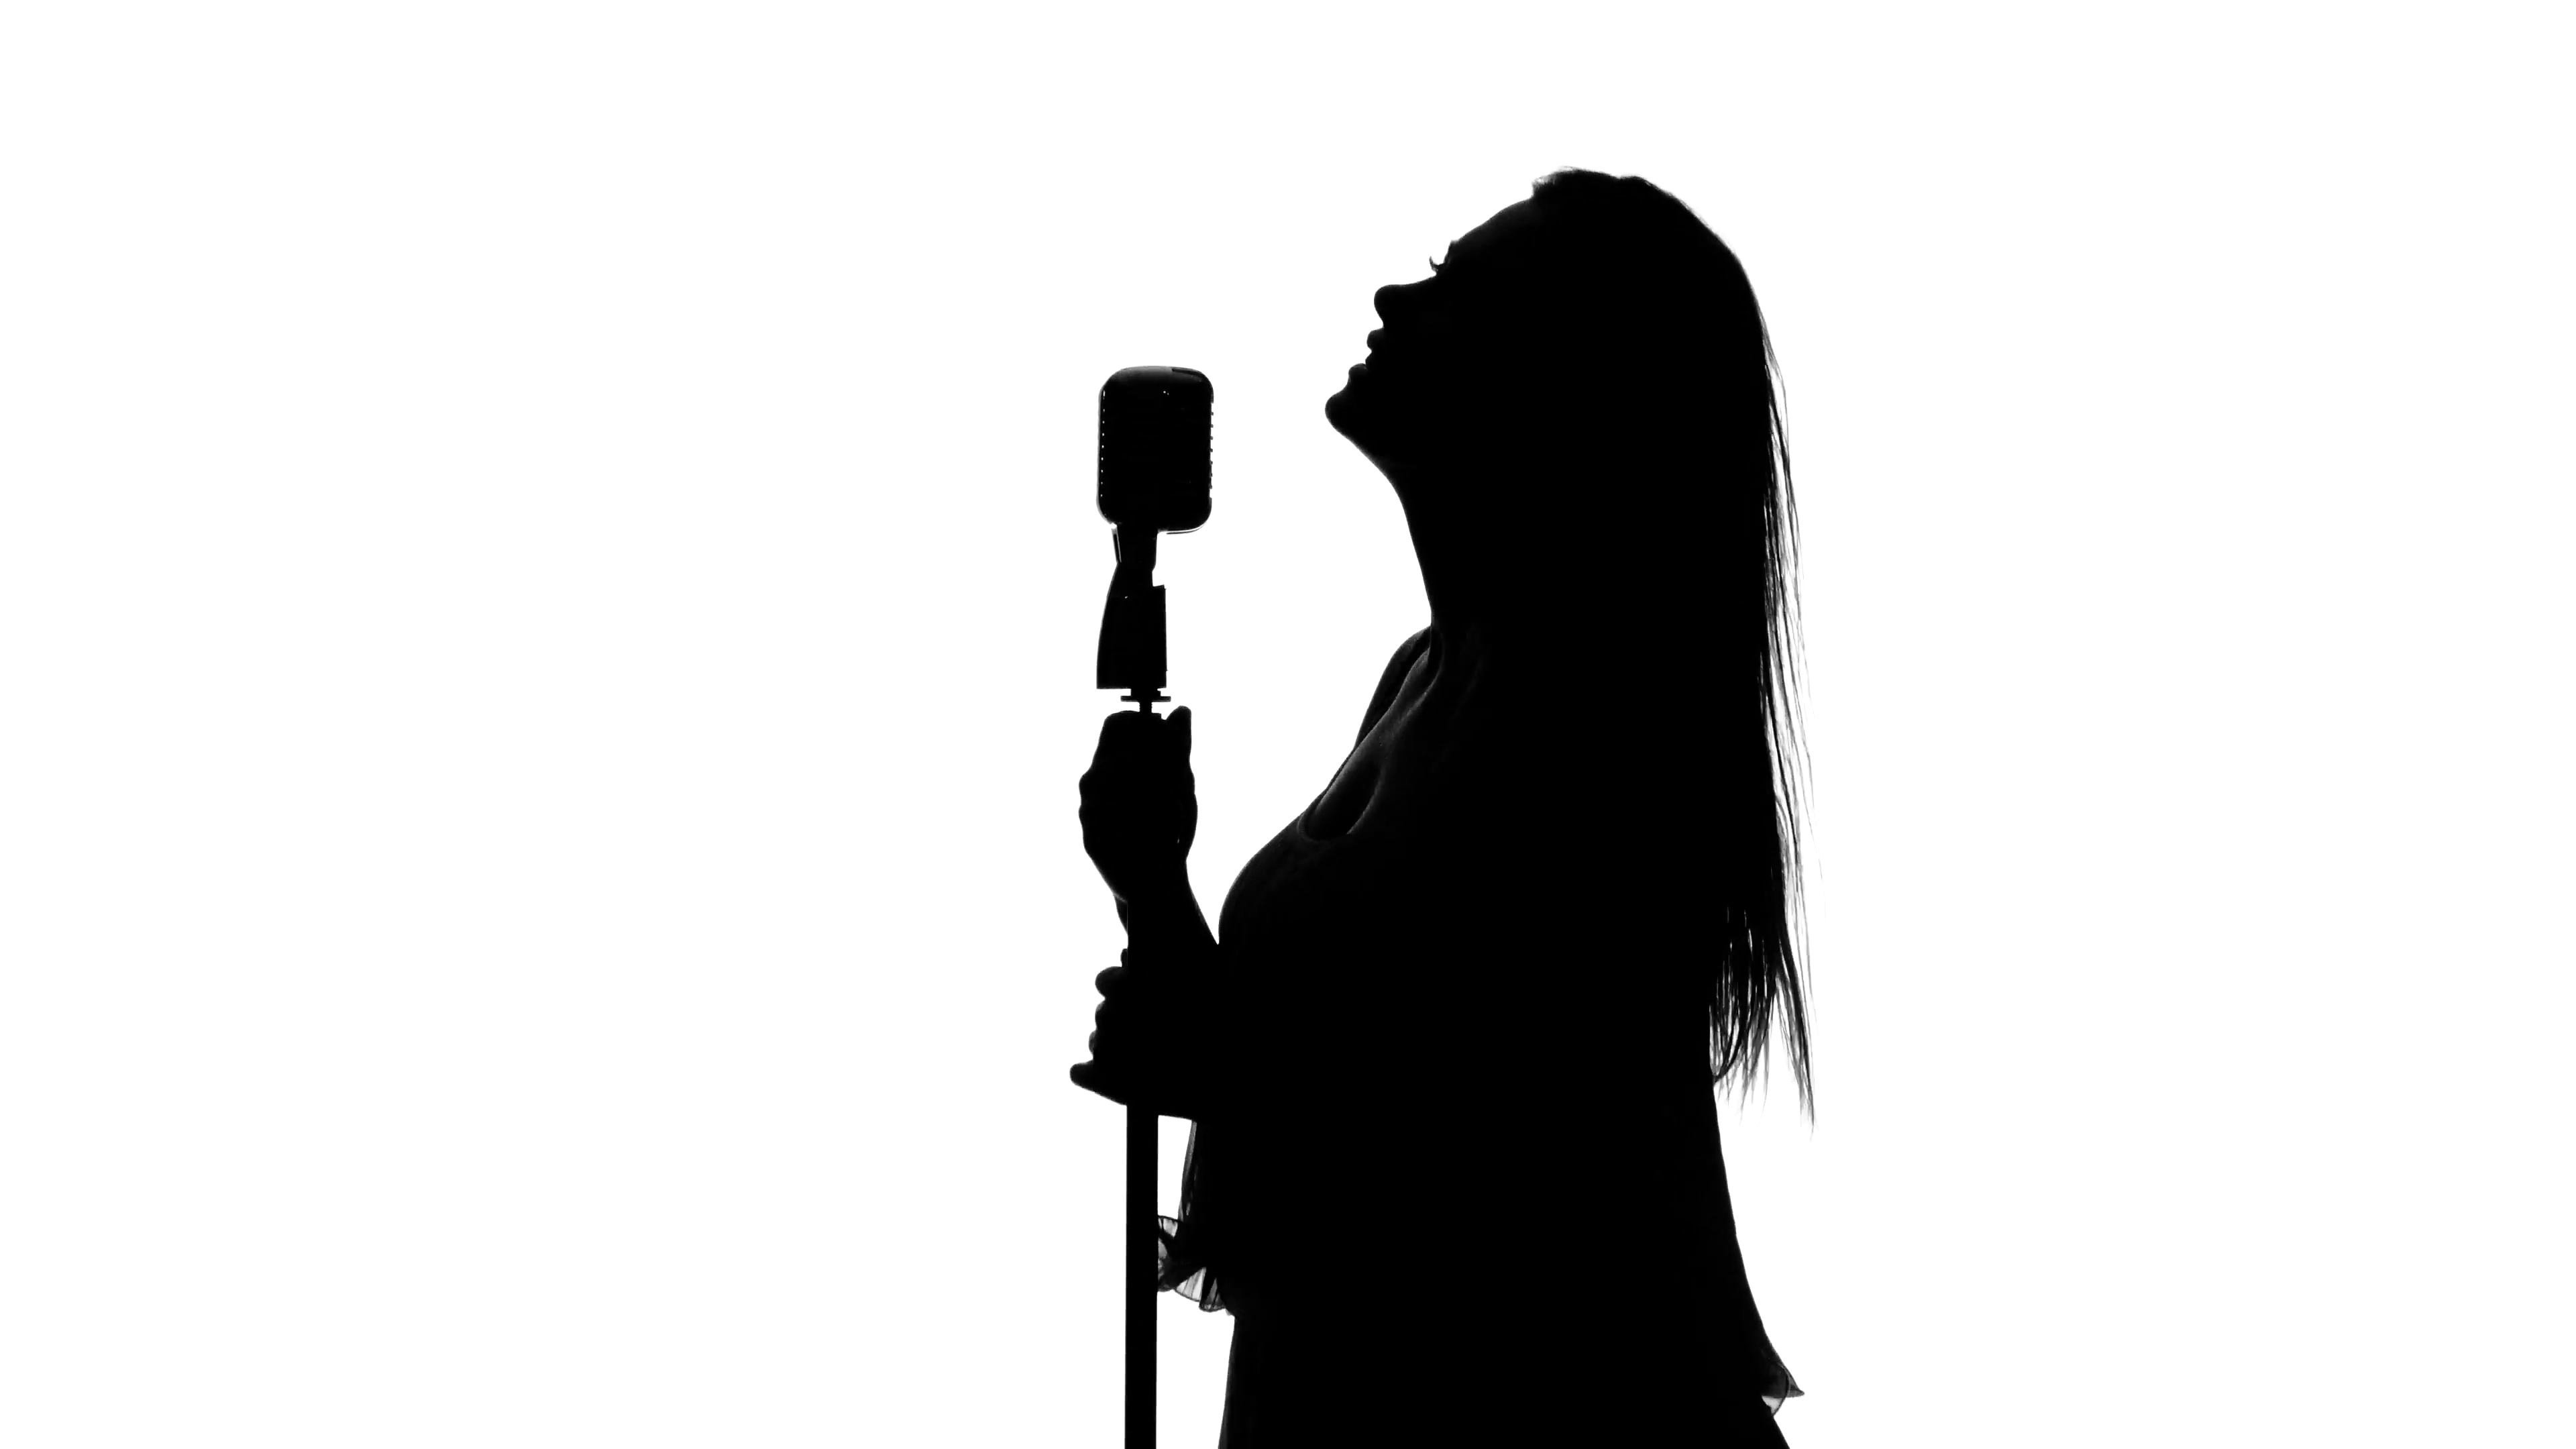 3840x2160 List Of Synonyms And Antonyms Of The Word Singer Silhouette